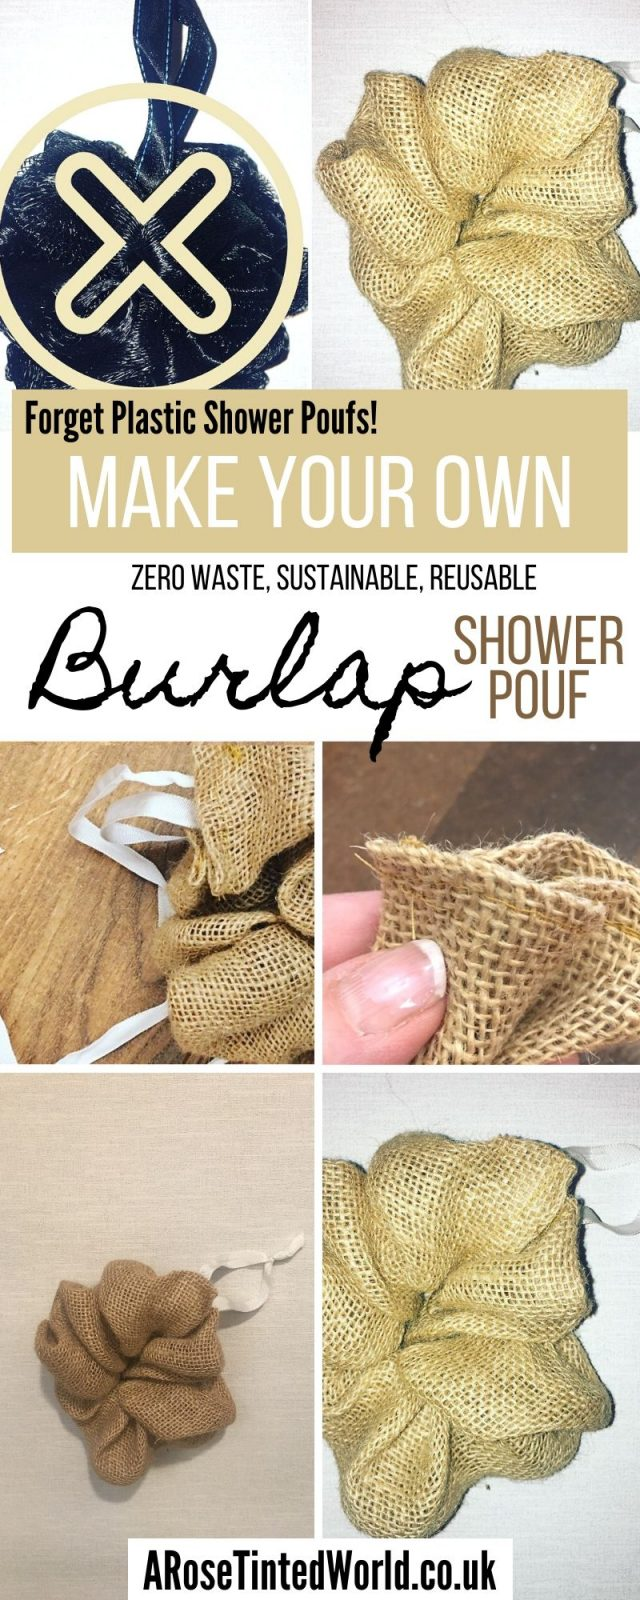 Zero Waste Hessian Shower Pouf - Forget plastic bacteria breeding bath scrub sponges & puffs, here is a version that is up cycled, sustainable , can be laundered with your wash & can be composted at the end of its use. A full pictorial tutorial on how To Make Shower Unsponges - Make your own scrubbers. A great zero waste bathroom swap. Upcycle old coffee sacks to make these . DIY guide . Environmentally friendly #showerpouf #showerpuff #unsponges #bathroomswaps #upcycling #sustainable #zerowaste #environmentallyfriendly #bathunsponges #diyunsponge